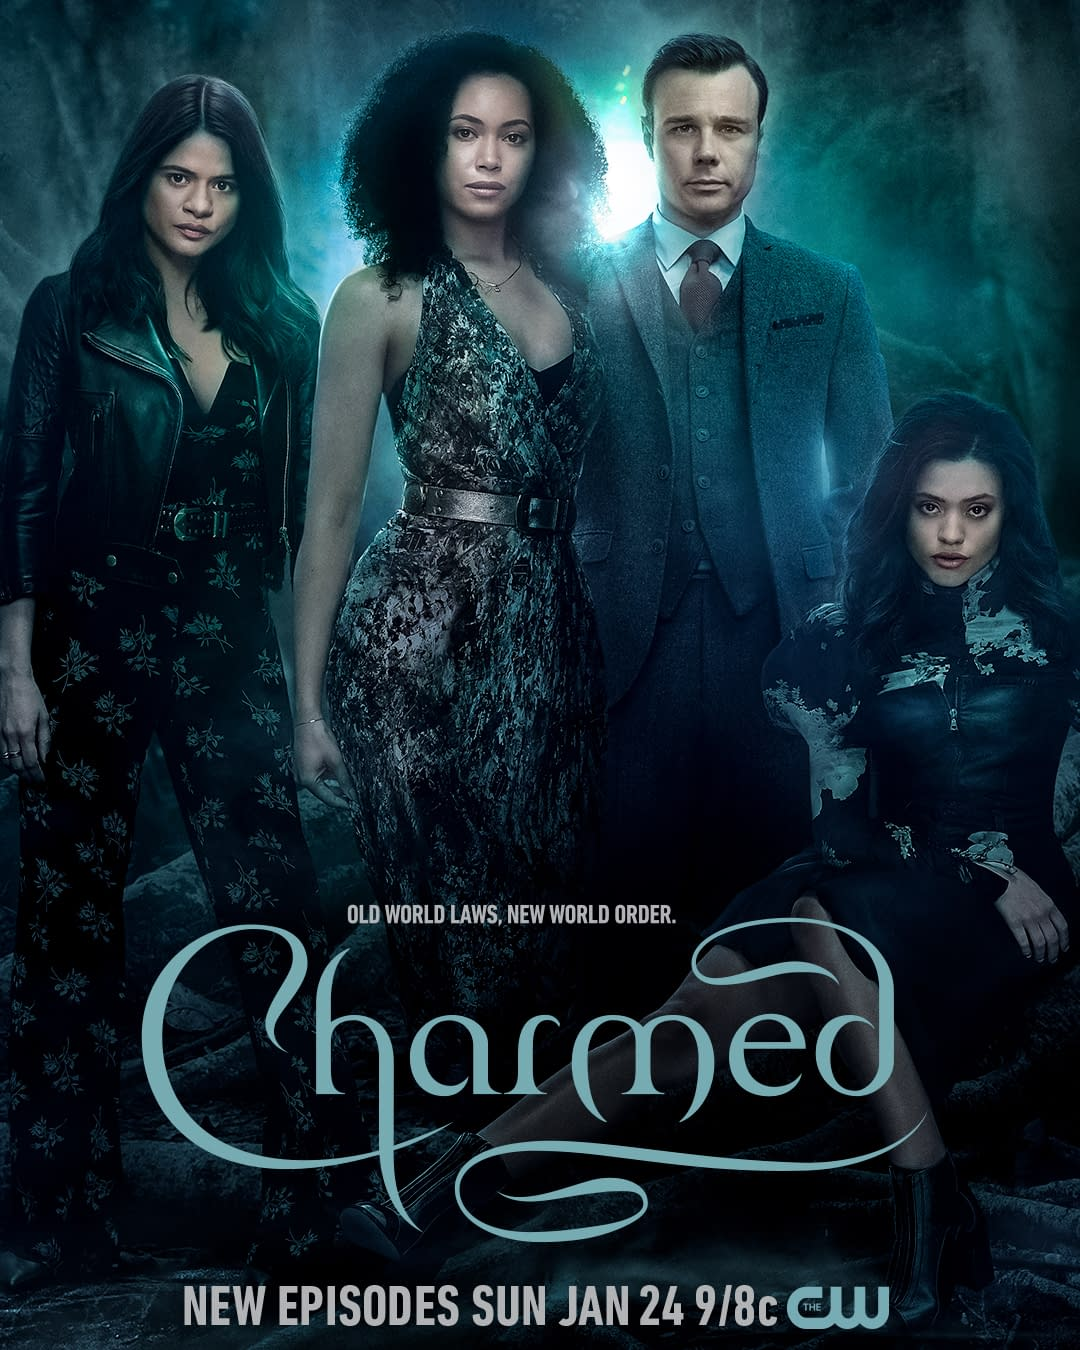 Charmed (2018) - Season 3 Episode 9